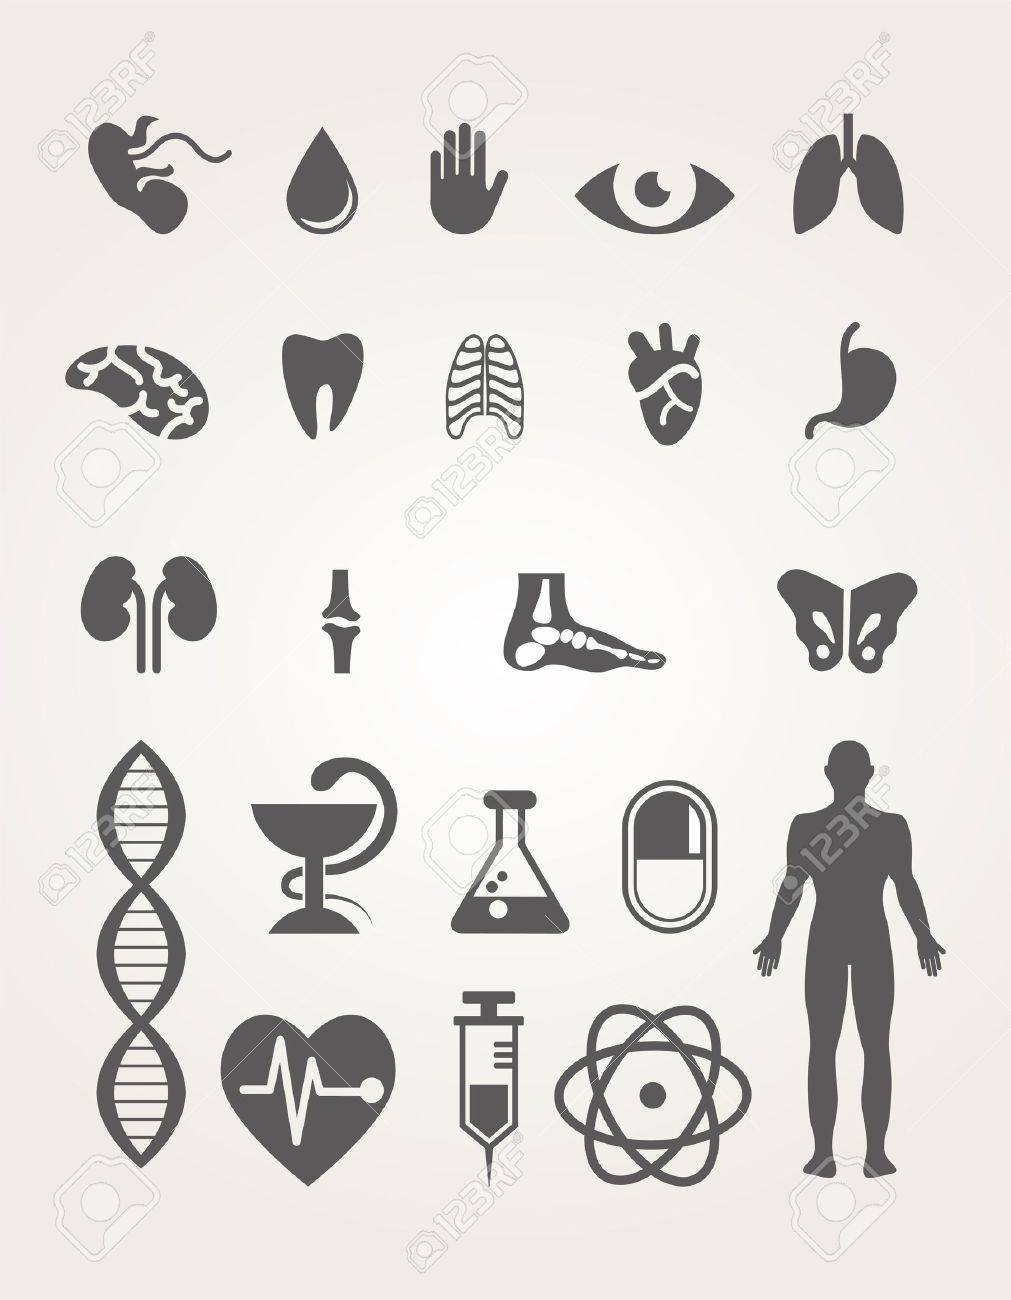 Medical icons set Stock Vector - 18702940